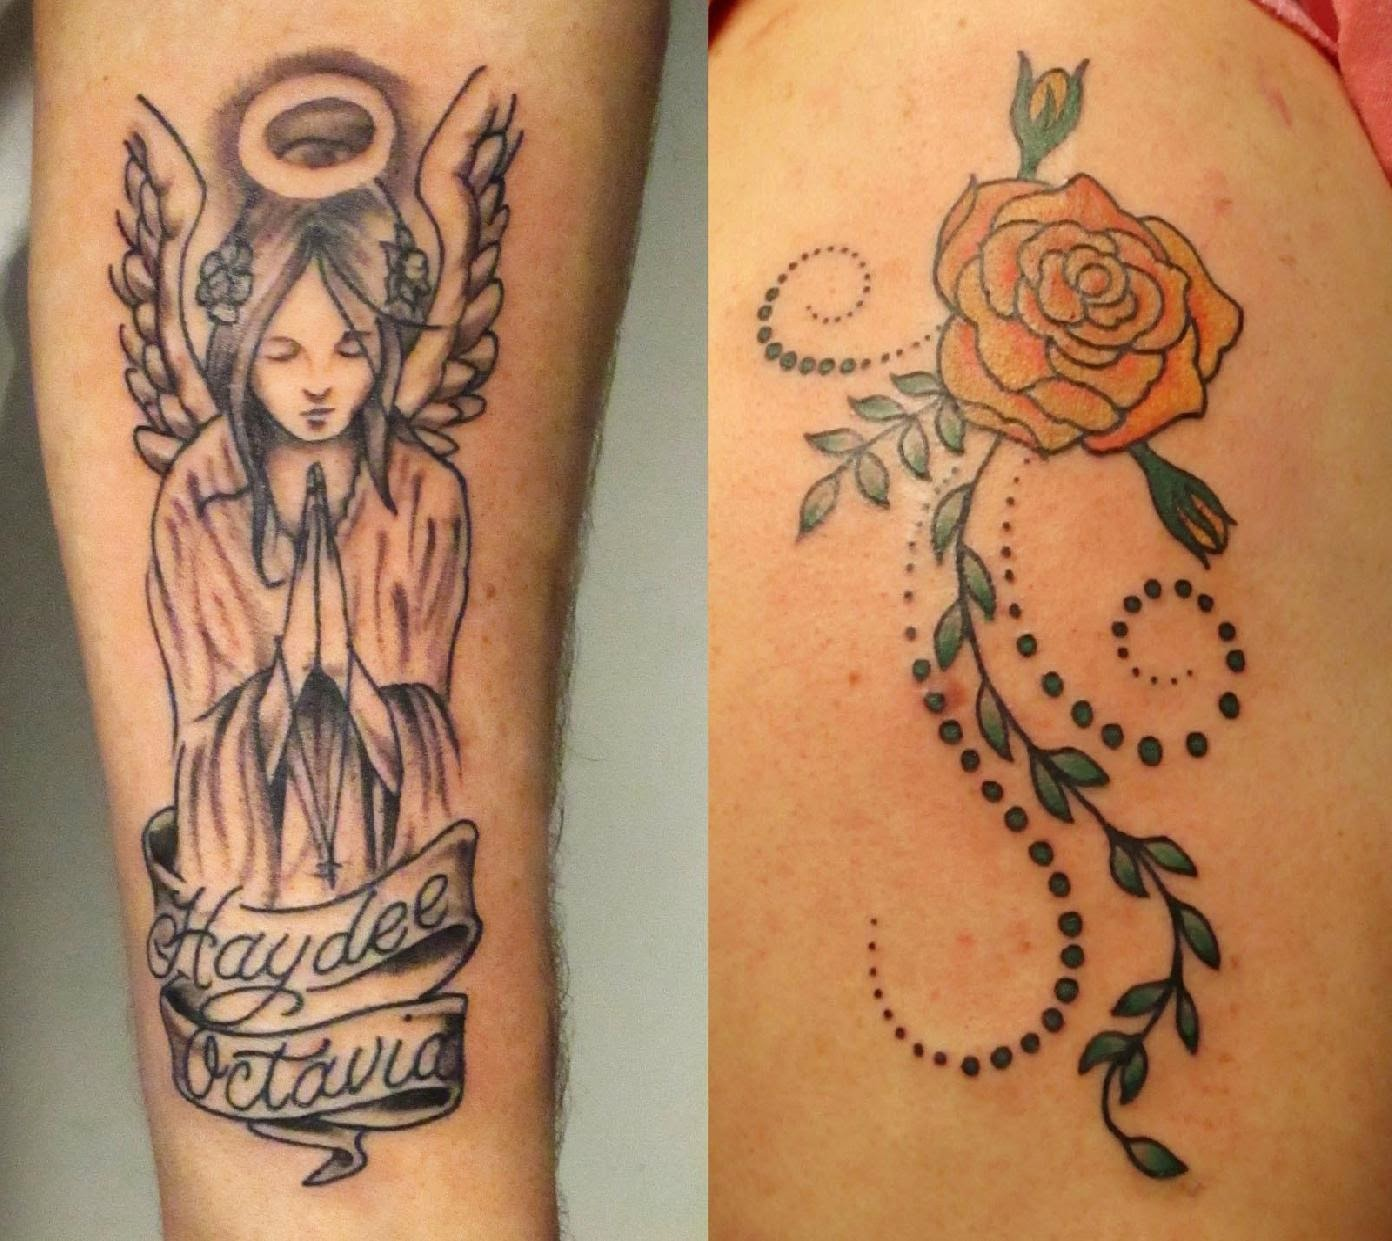 the art and history of tattoos and body piercing It is very much of an art craftsmanship is often outstanding home history the psychology of tattoos and piercing history the psychology of tattoos and piercing both tattooing and body piercing go back centuries, but was not universal.